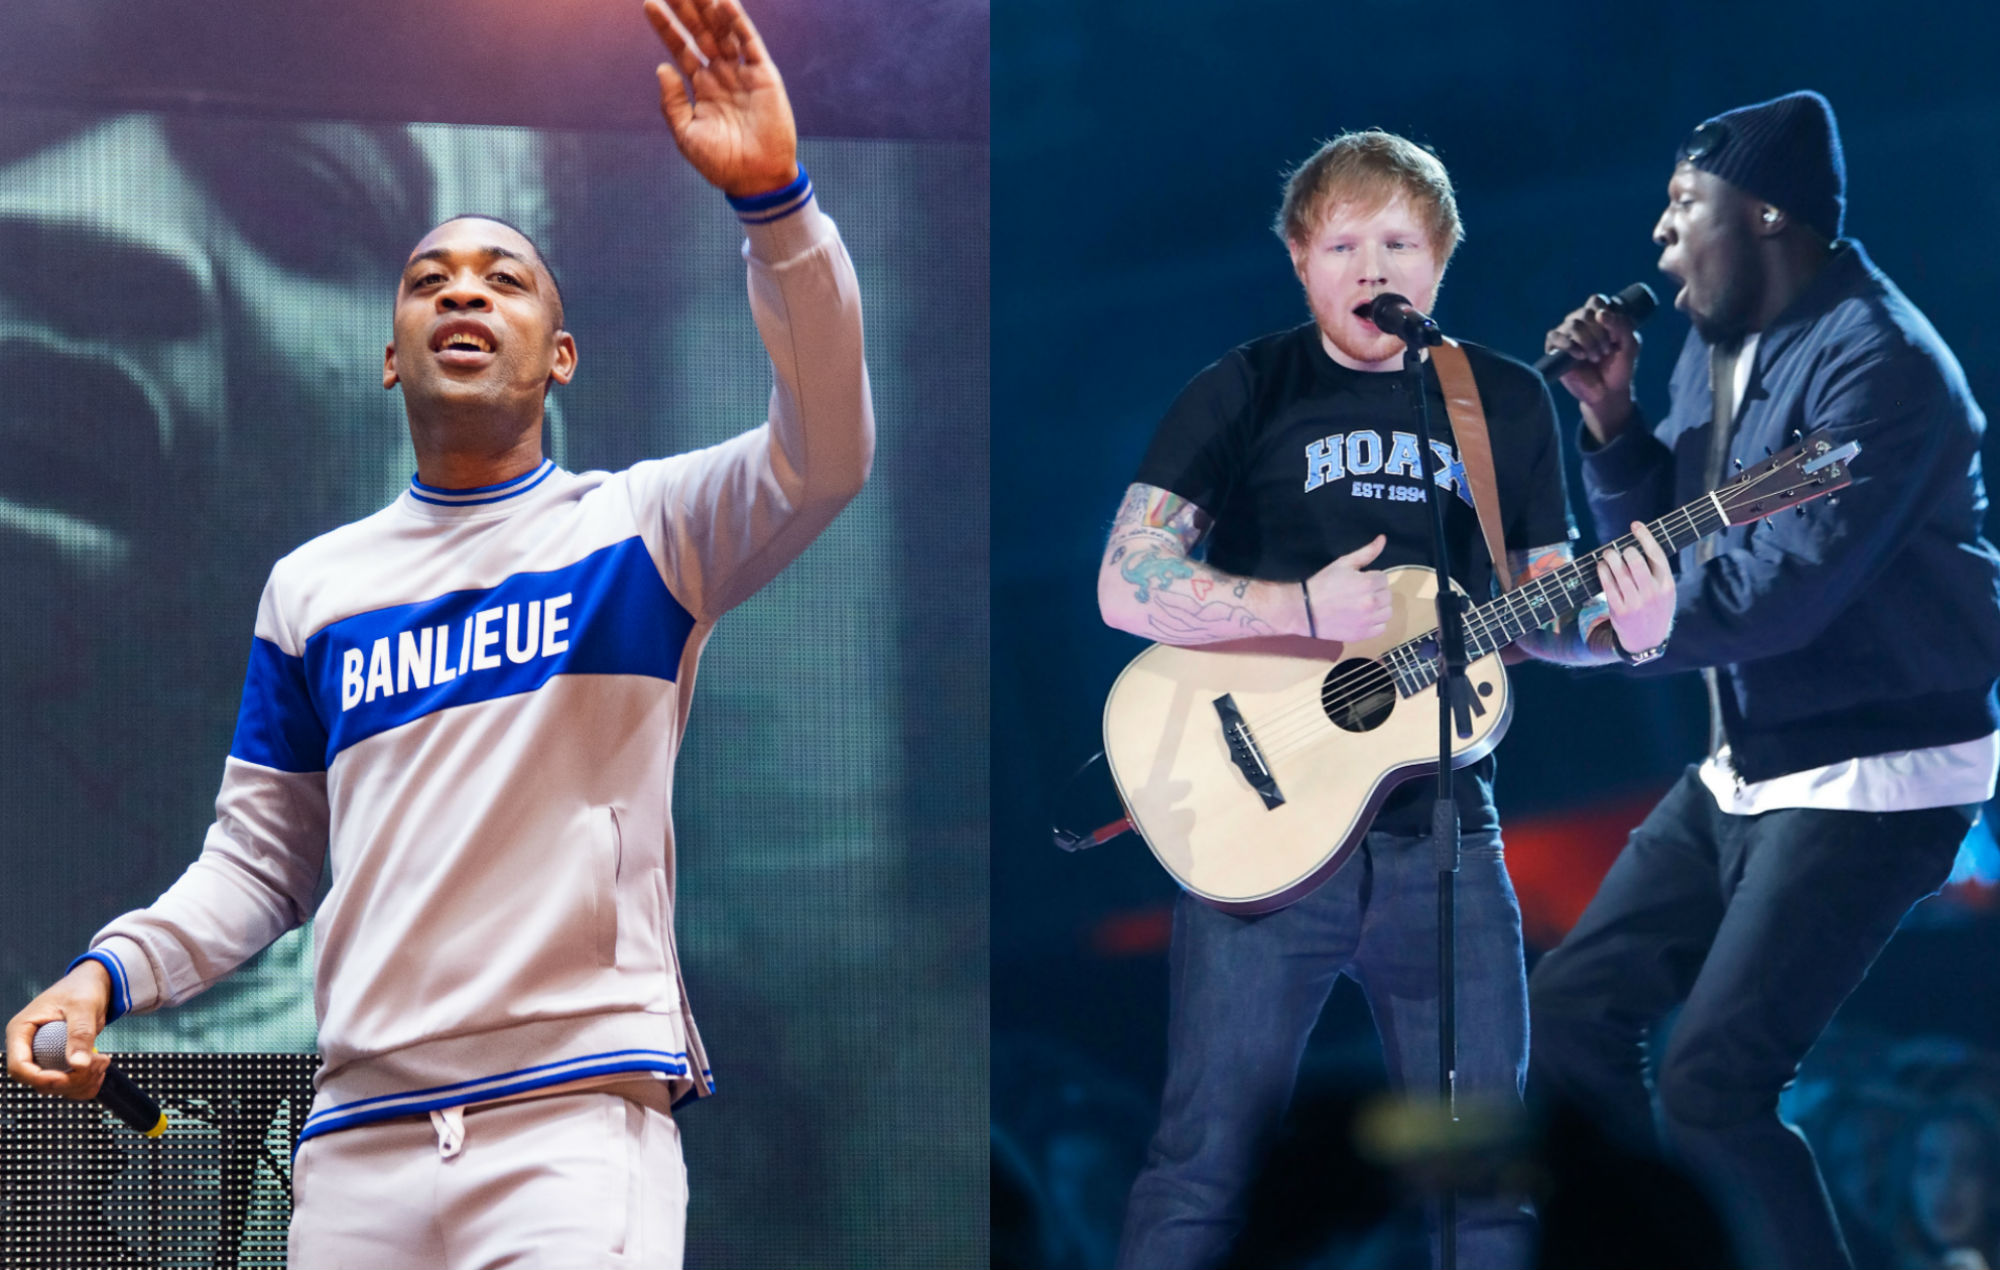 Wiley goads Ed Sheeran for a reaction after calling him a